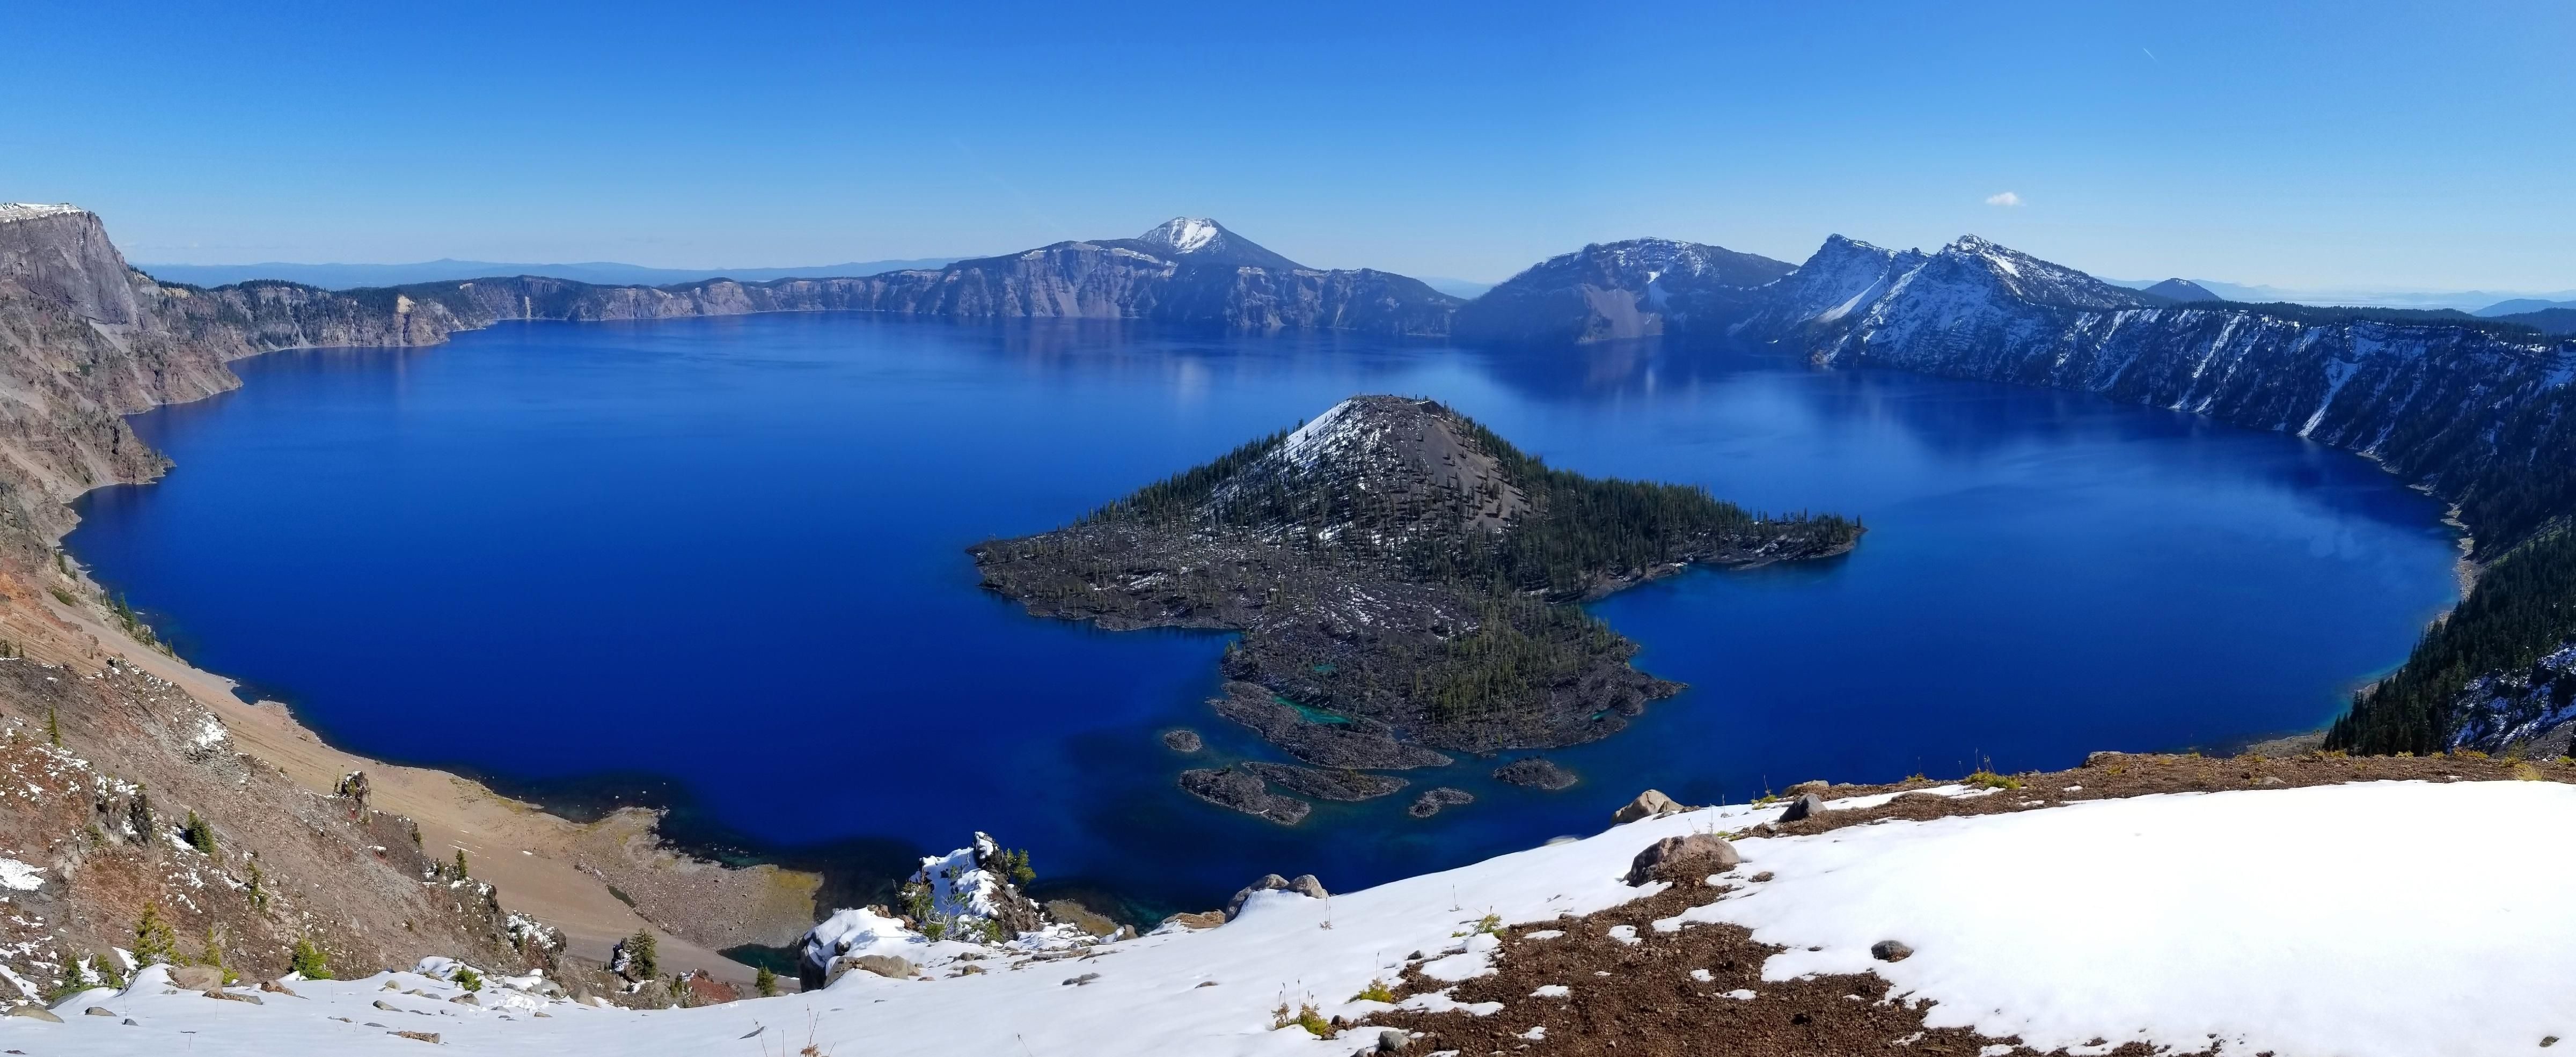 The deep blue color of Crater Lake always makes it look stunning taken at Crater Lake National Park Oregon [4800x1970][OC] #Music #IndieArtist #Chicago #craterlakenationalpark The deep blue color of Crater Lake always makes it look stunning taken at Crater Lake National Park Oregon [4800x1970][OC] #Music #IndieArtist #Chicago #craterlakeoregon The deep blue color of Crater Lake always makes it look stunning taken at Crater Lake National Park Oregon [4800x1970][OC] #Music #IndieArtist #Chicago #c #craterlakeoregon